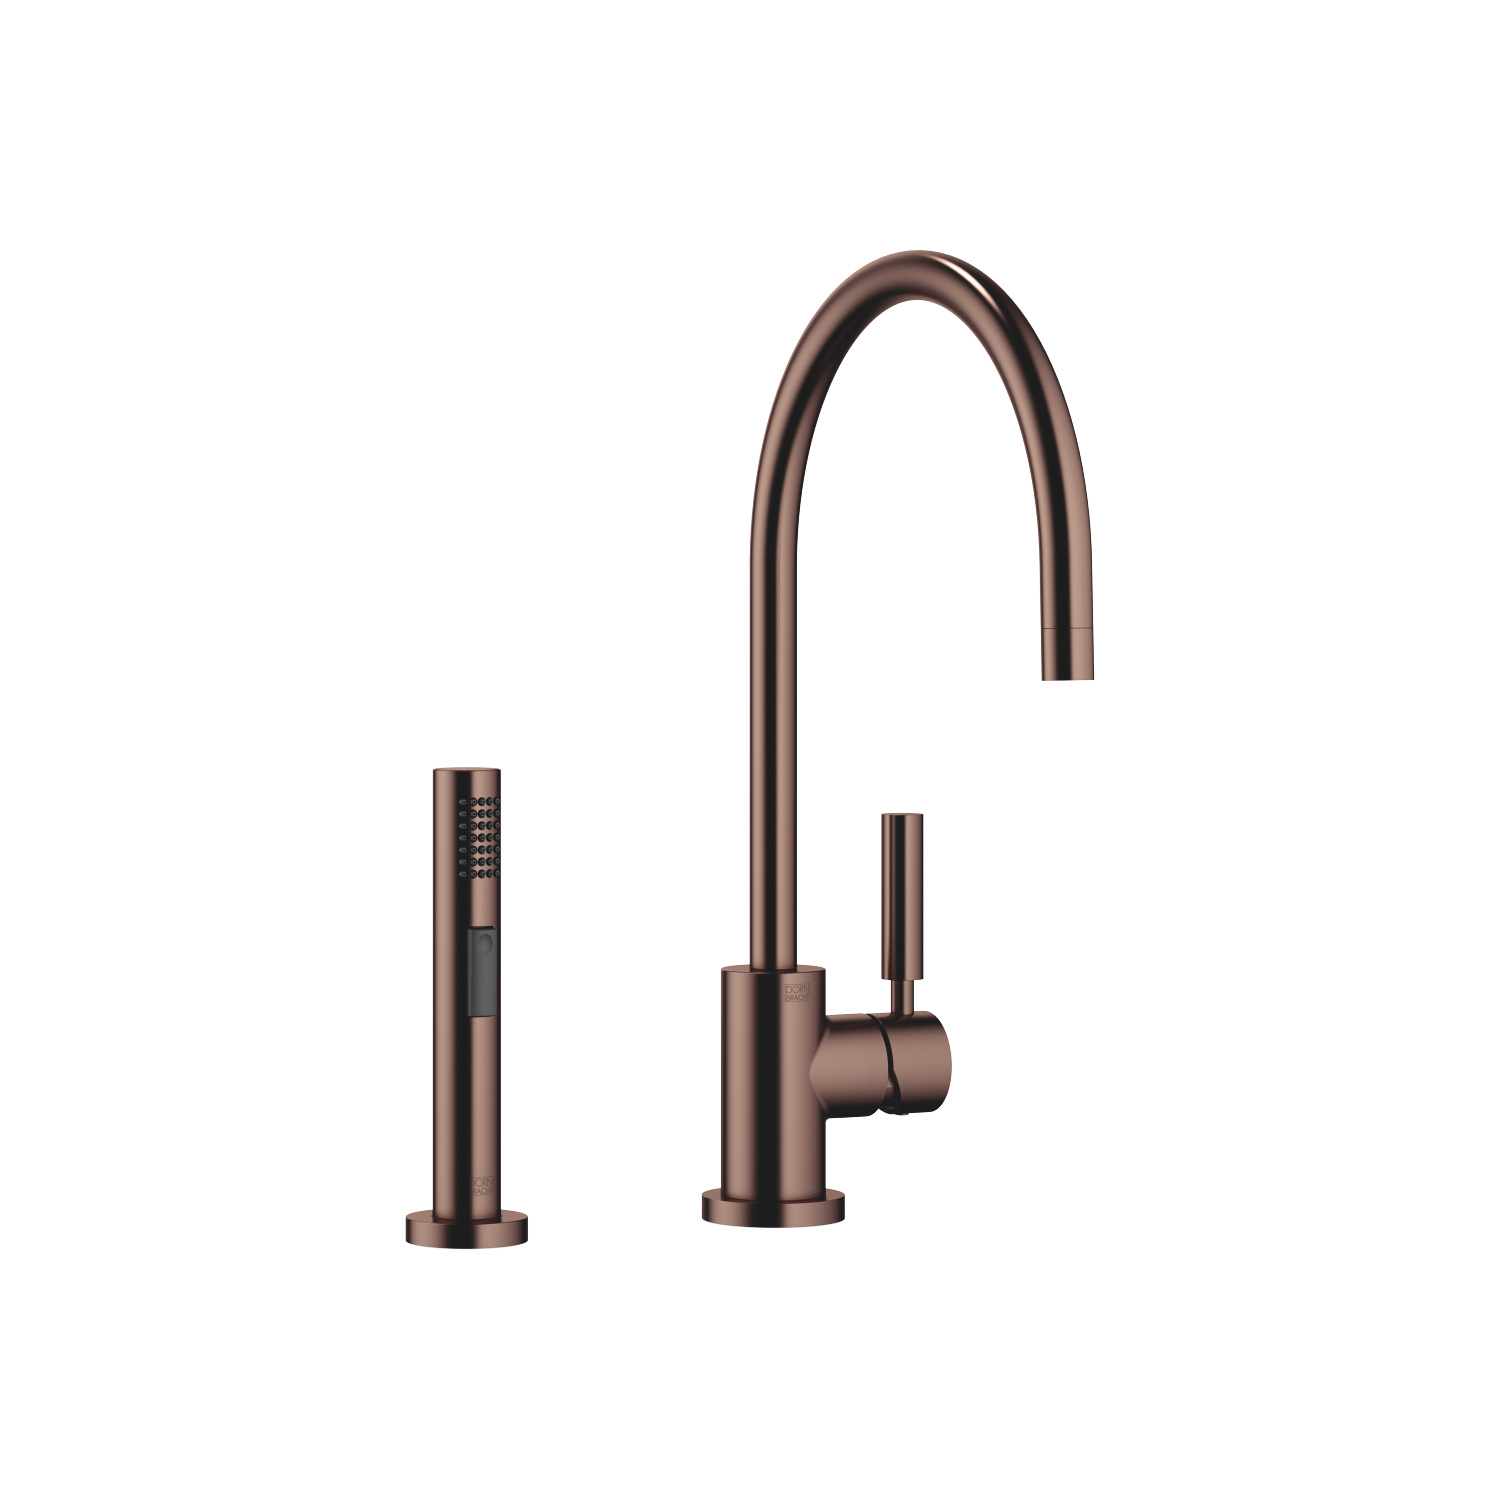 Tara Classic Kitchen Faucets Single Lever Mixer With